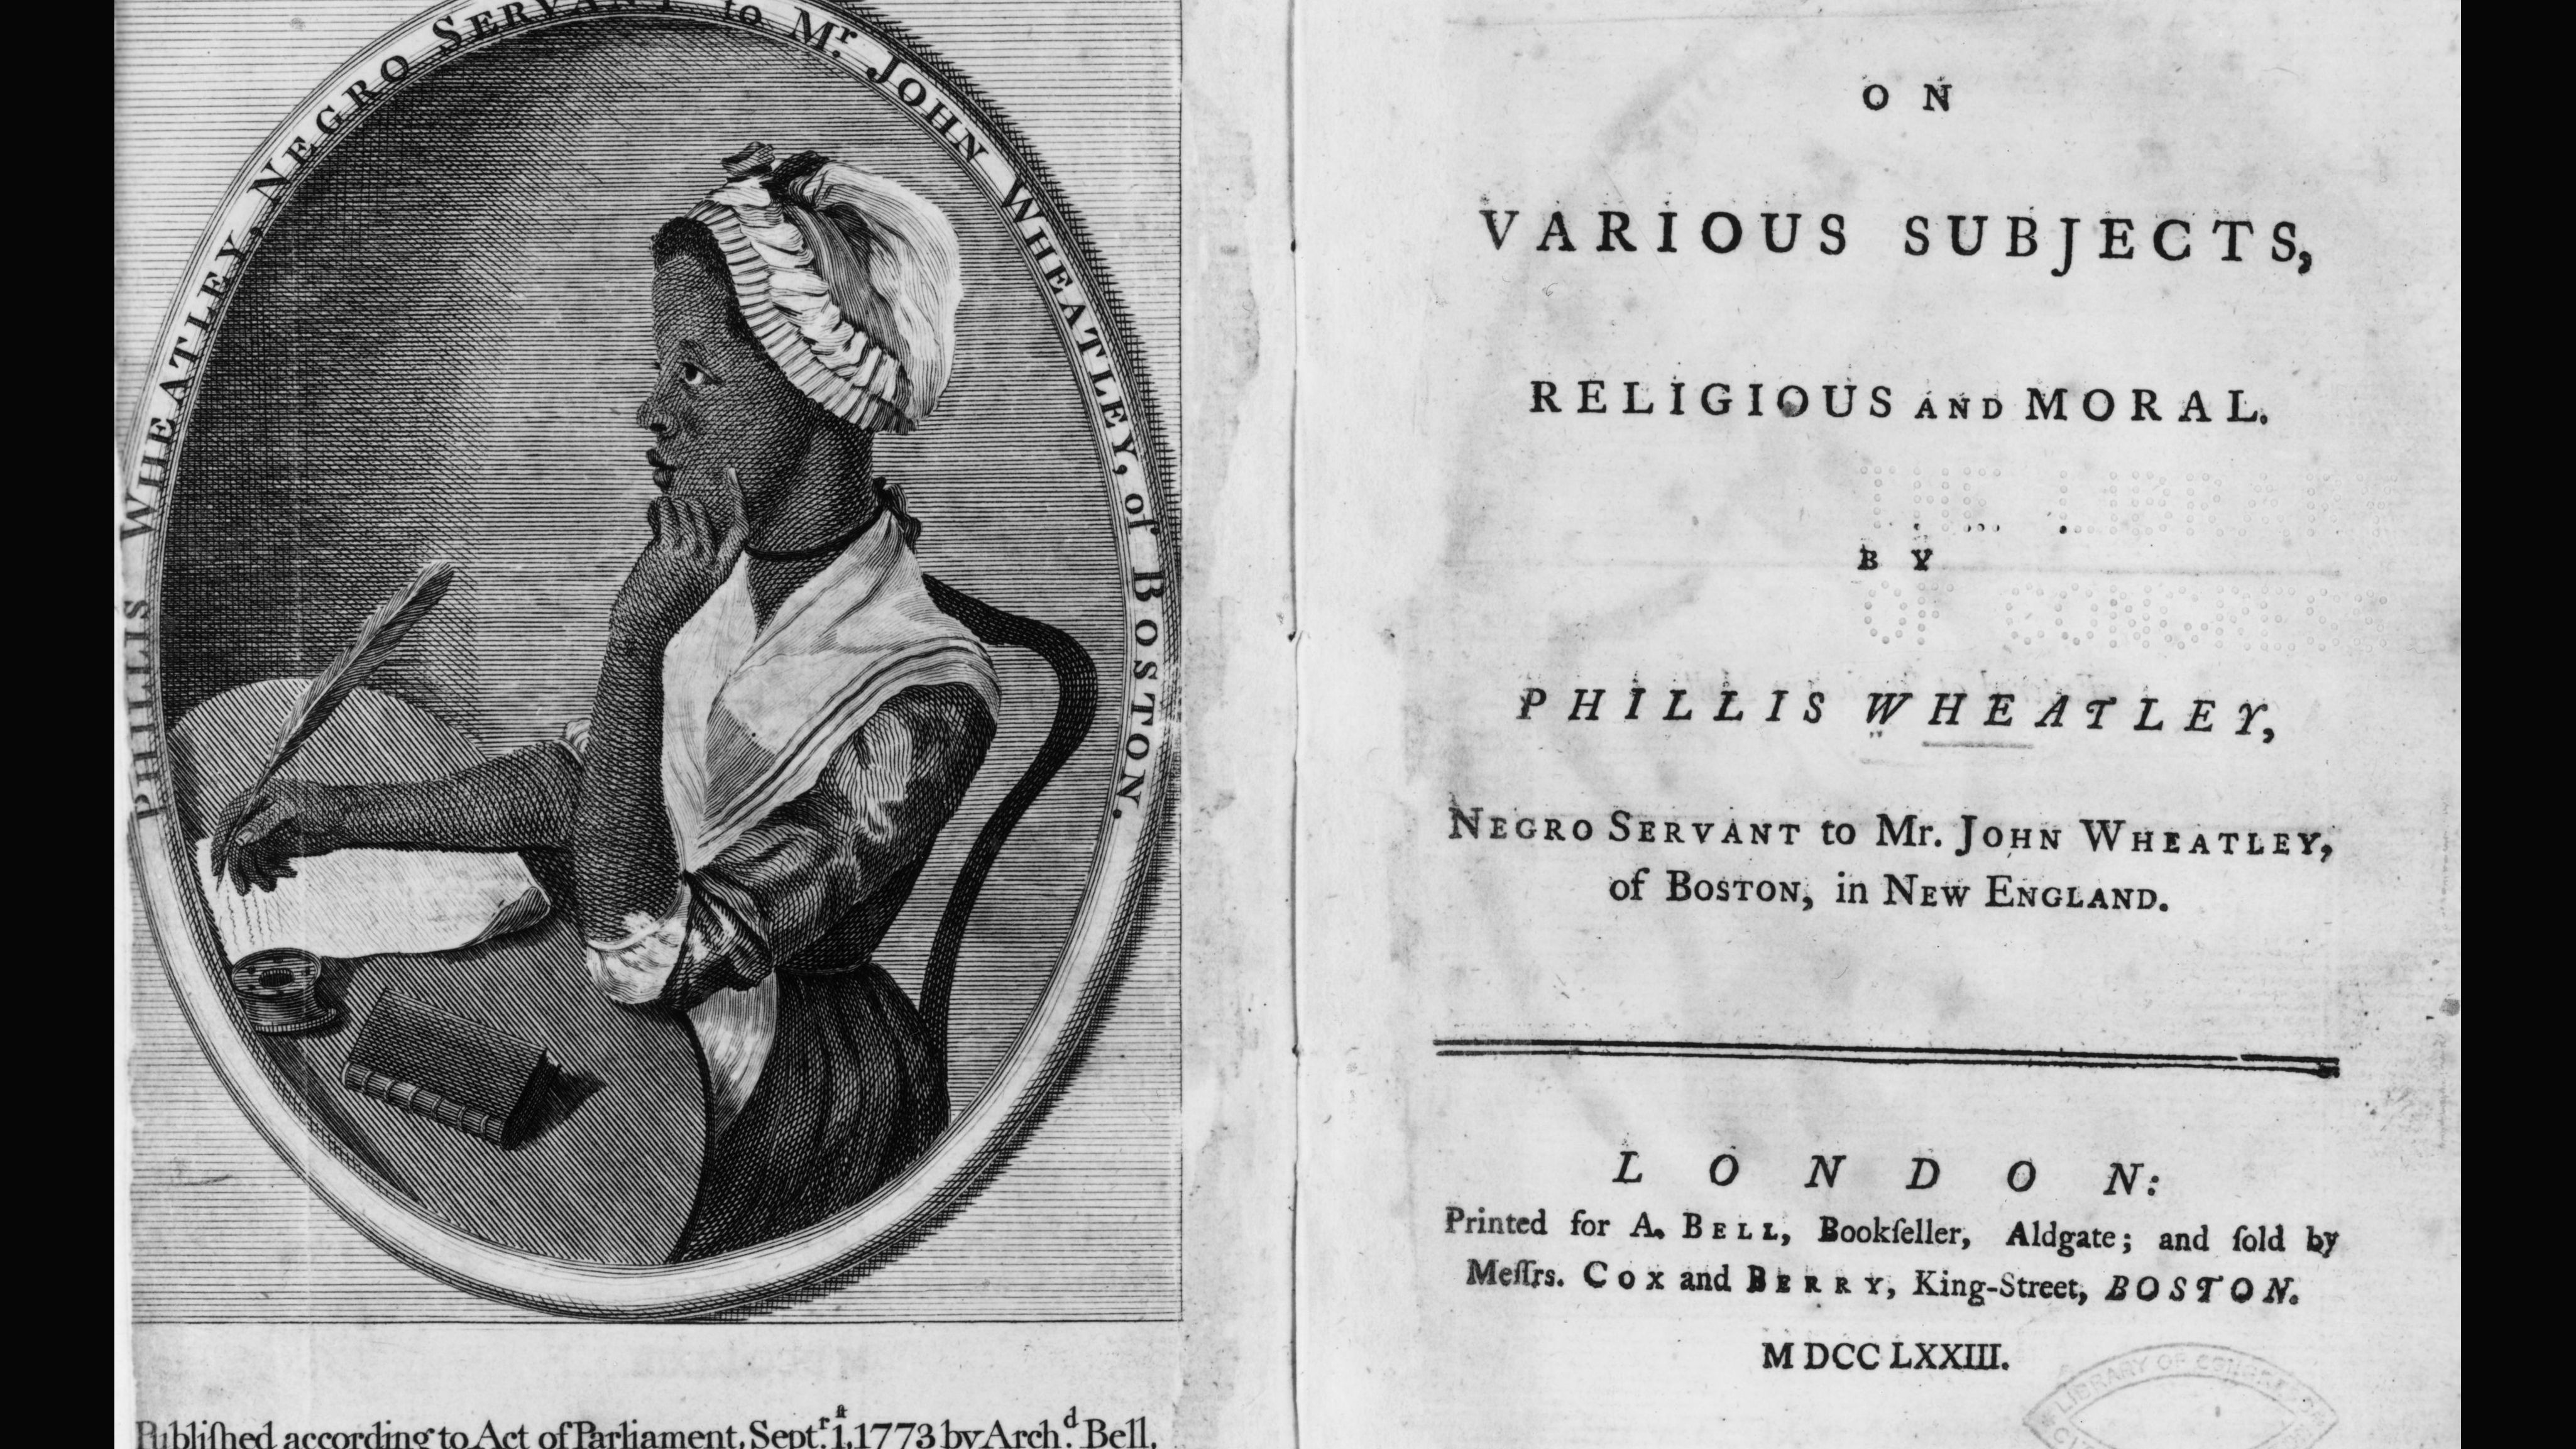 Slave Poet Phillis Wheatley - An Analysis of Her Poems